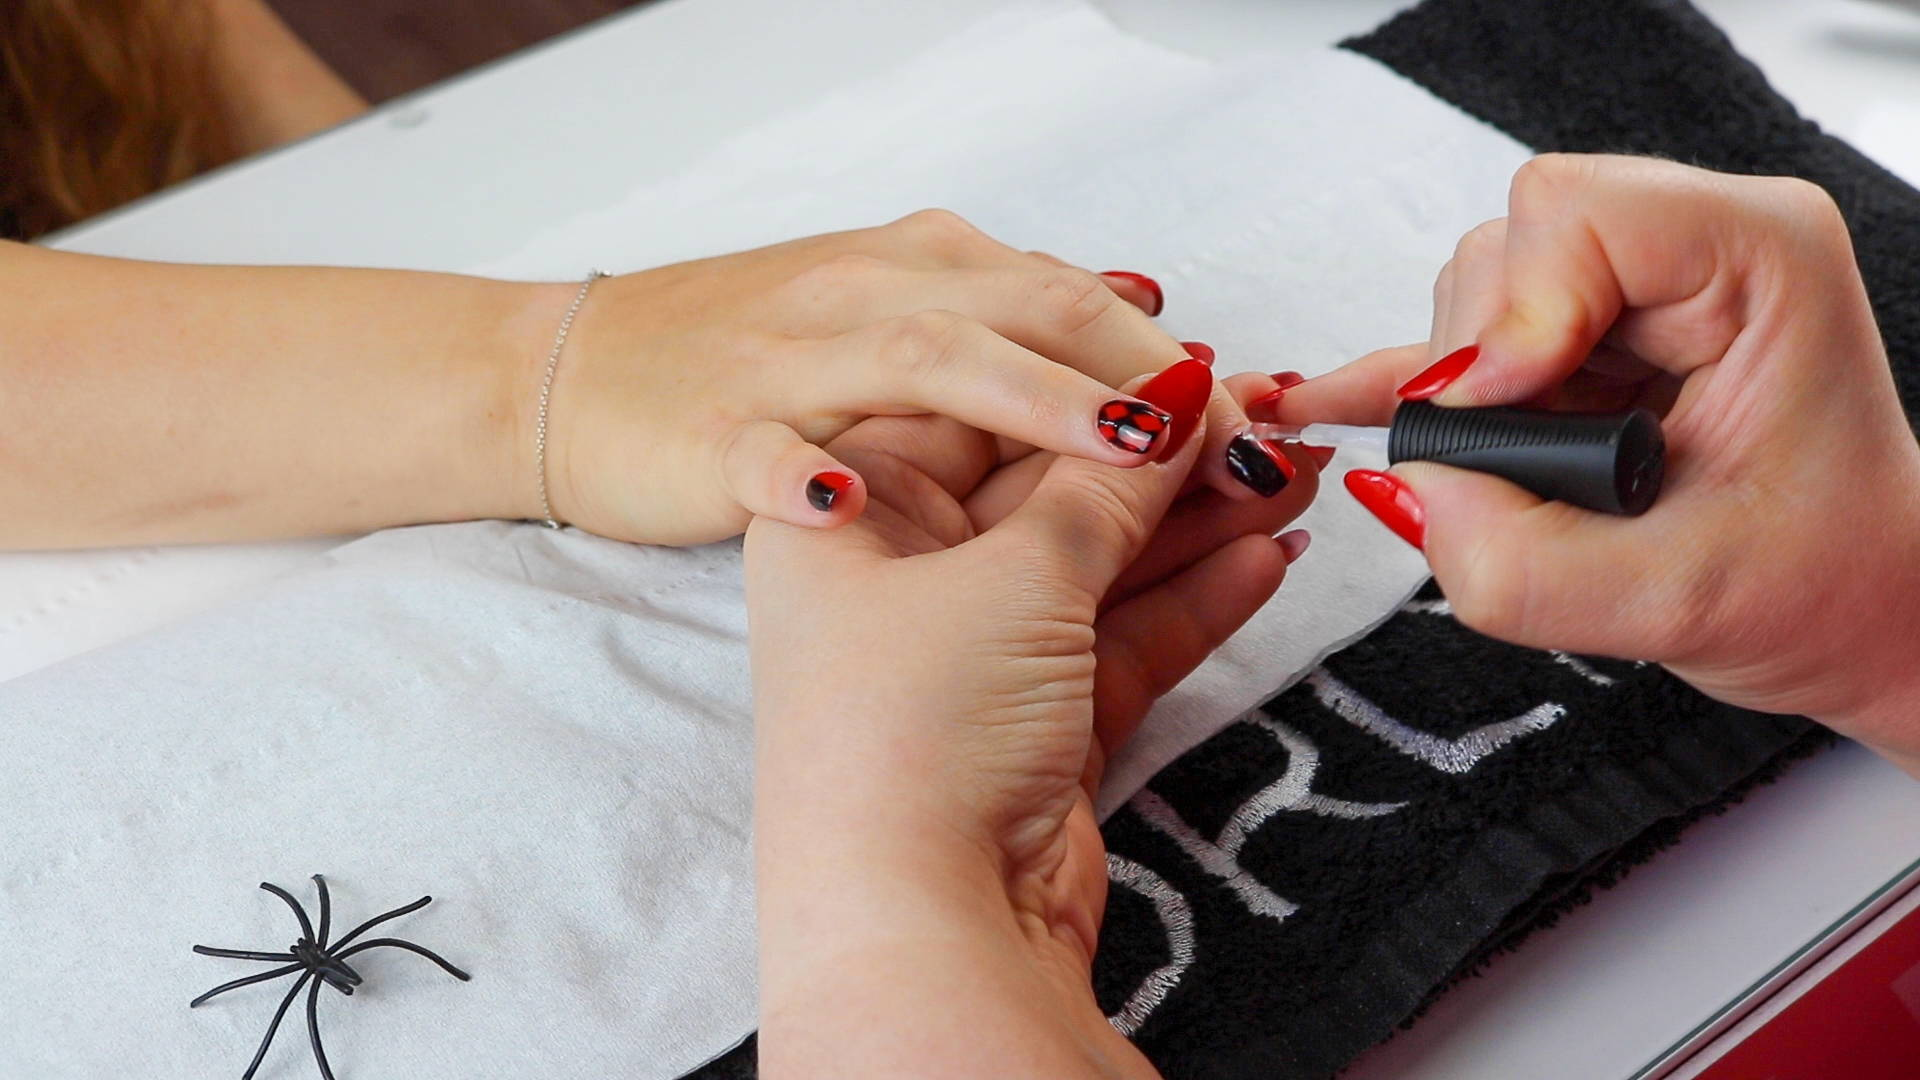 ORLY Glosser Topcoat being painted over Harley Quinn nails